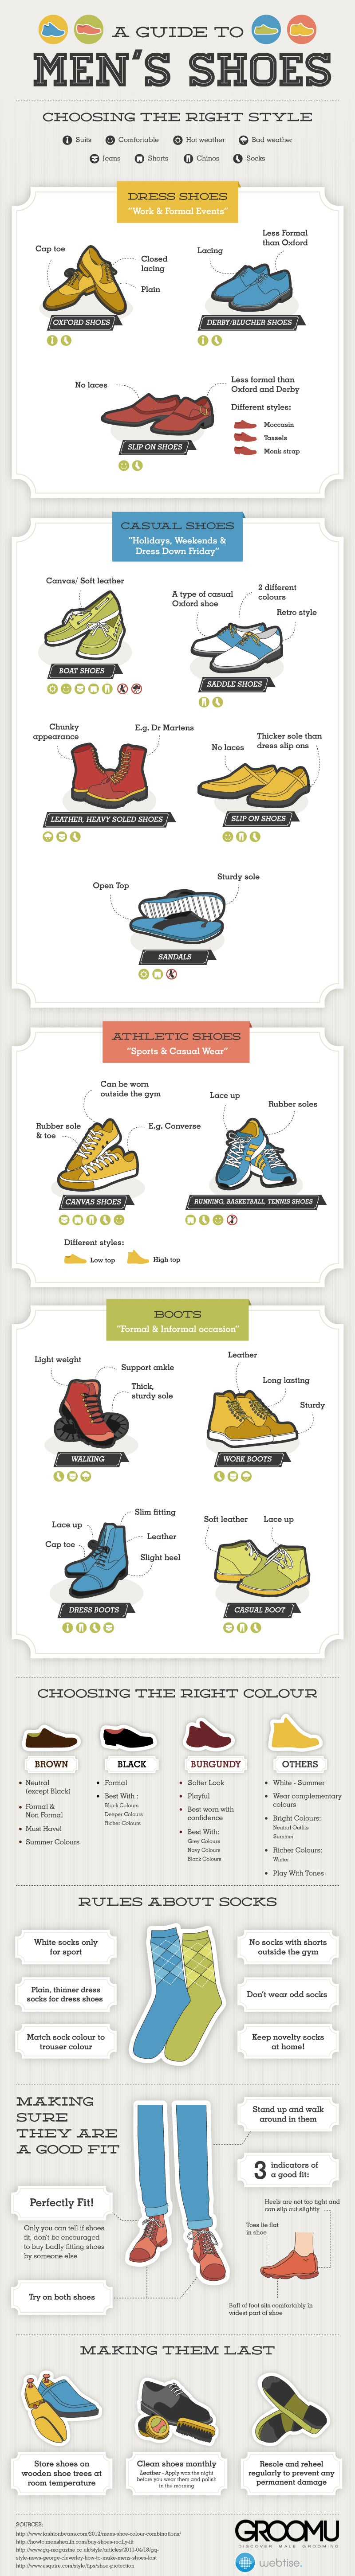 A Guide to Men's Shoes-Infographic